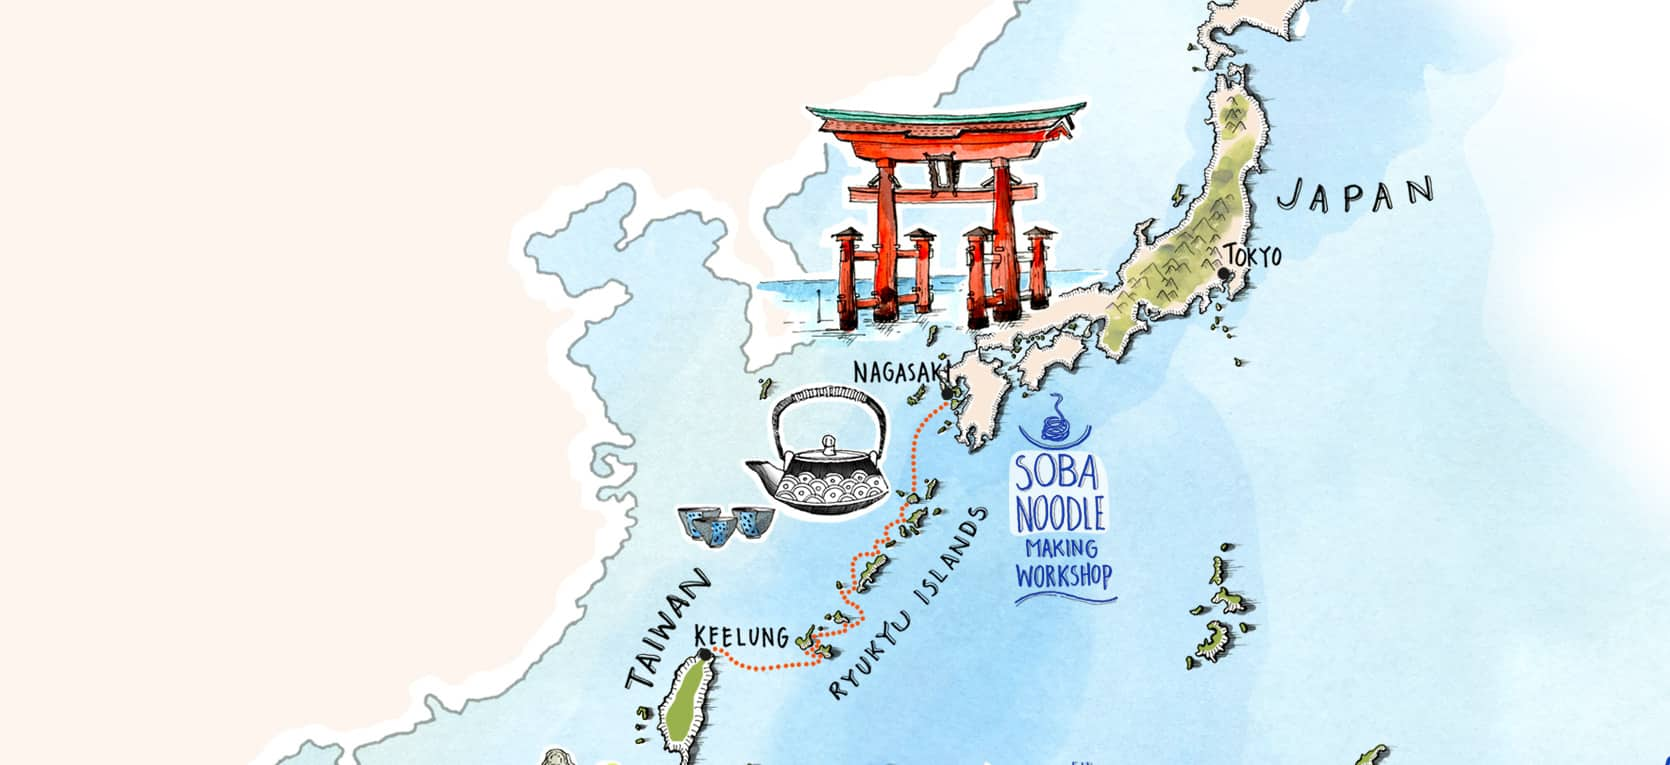 Small Islands of The World - Nagasaki to Keelung Map